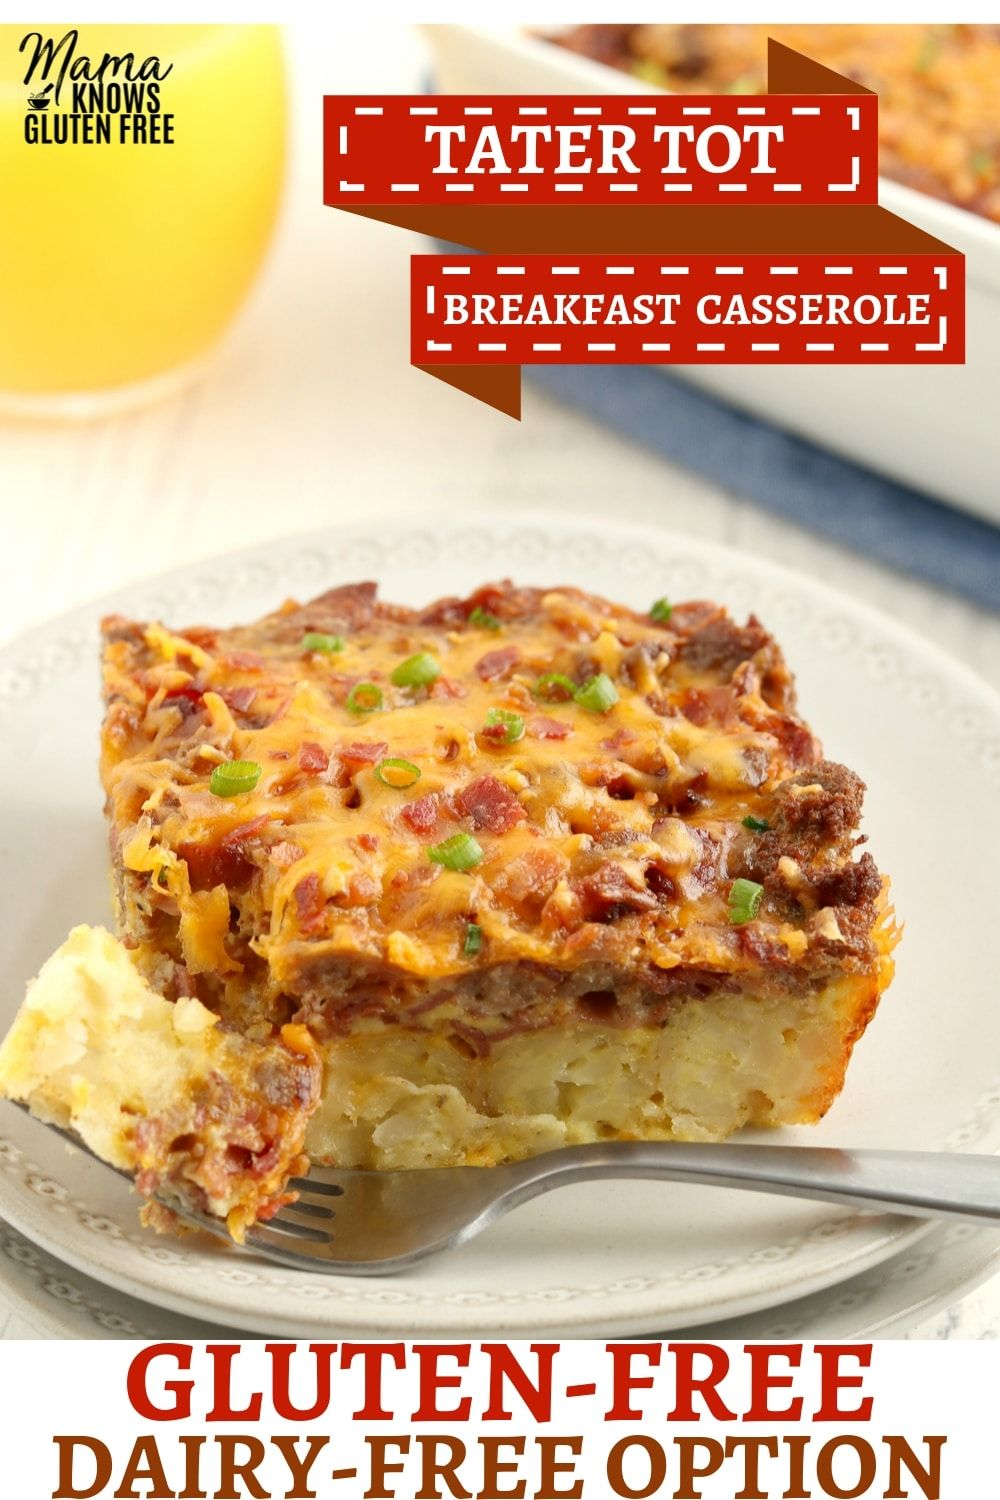 Easy to make glutenfree breakfast casserole with tater